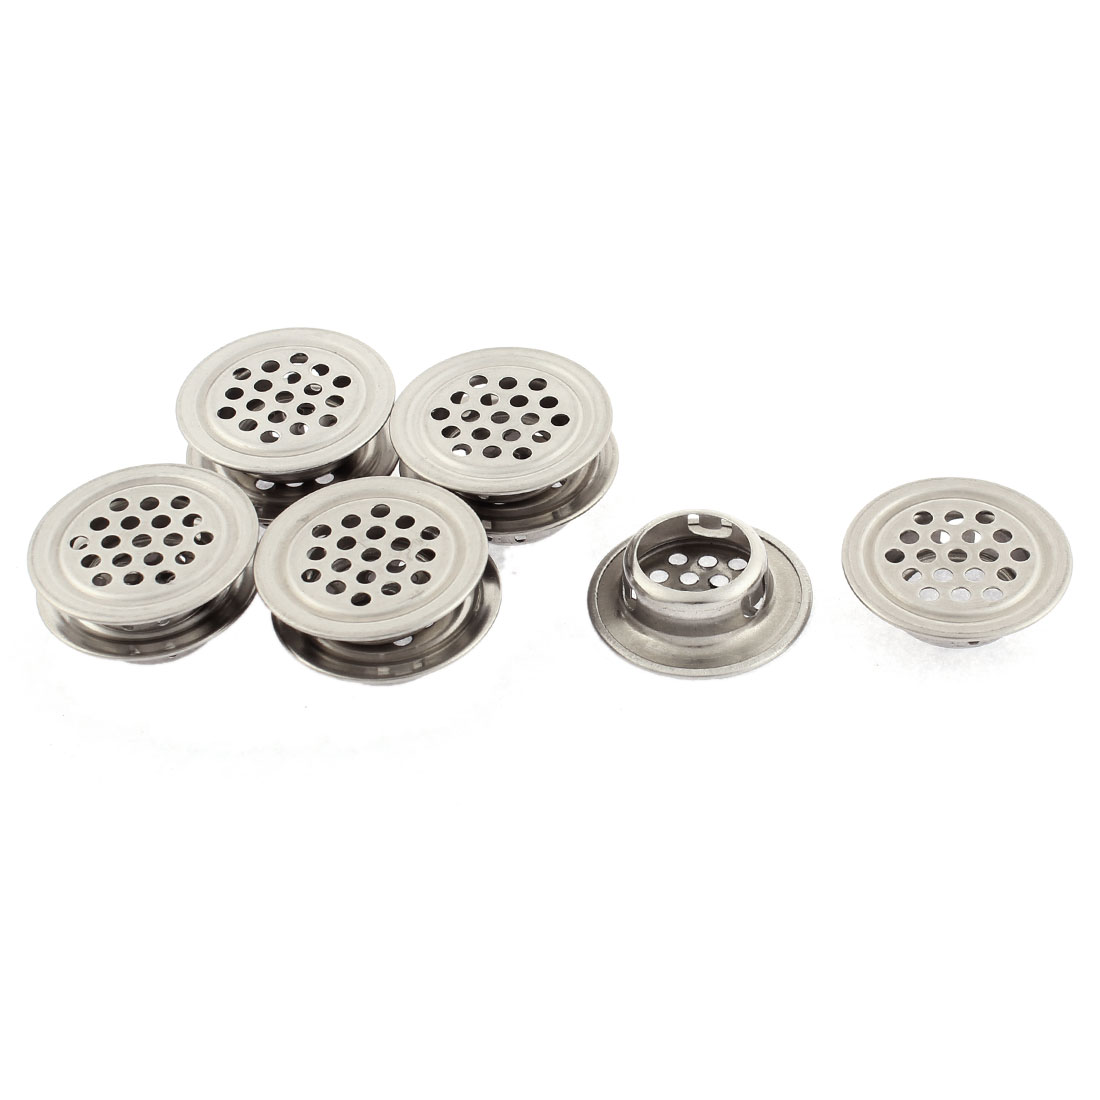 Round Shaped Perforated Mesh Air Vents Ventilation Louvers 30mm Dia 10pcs